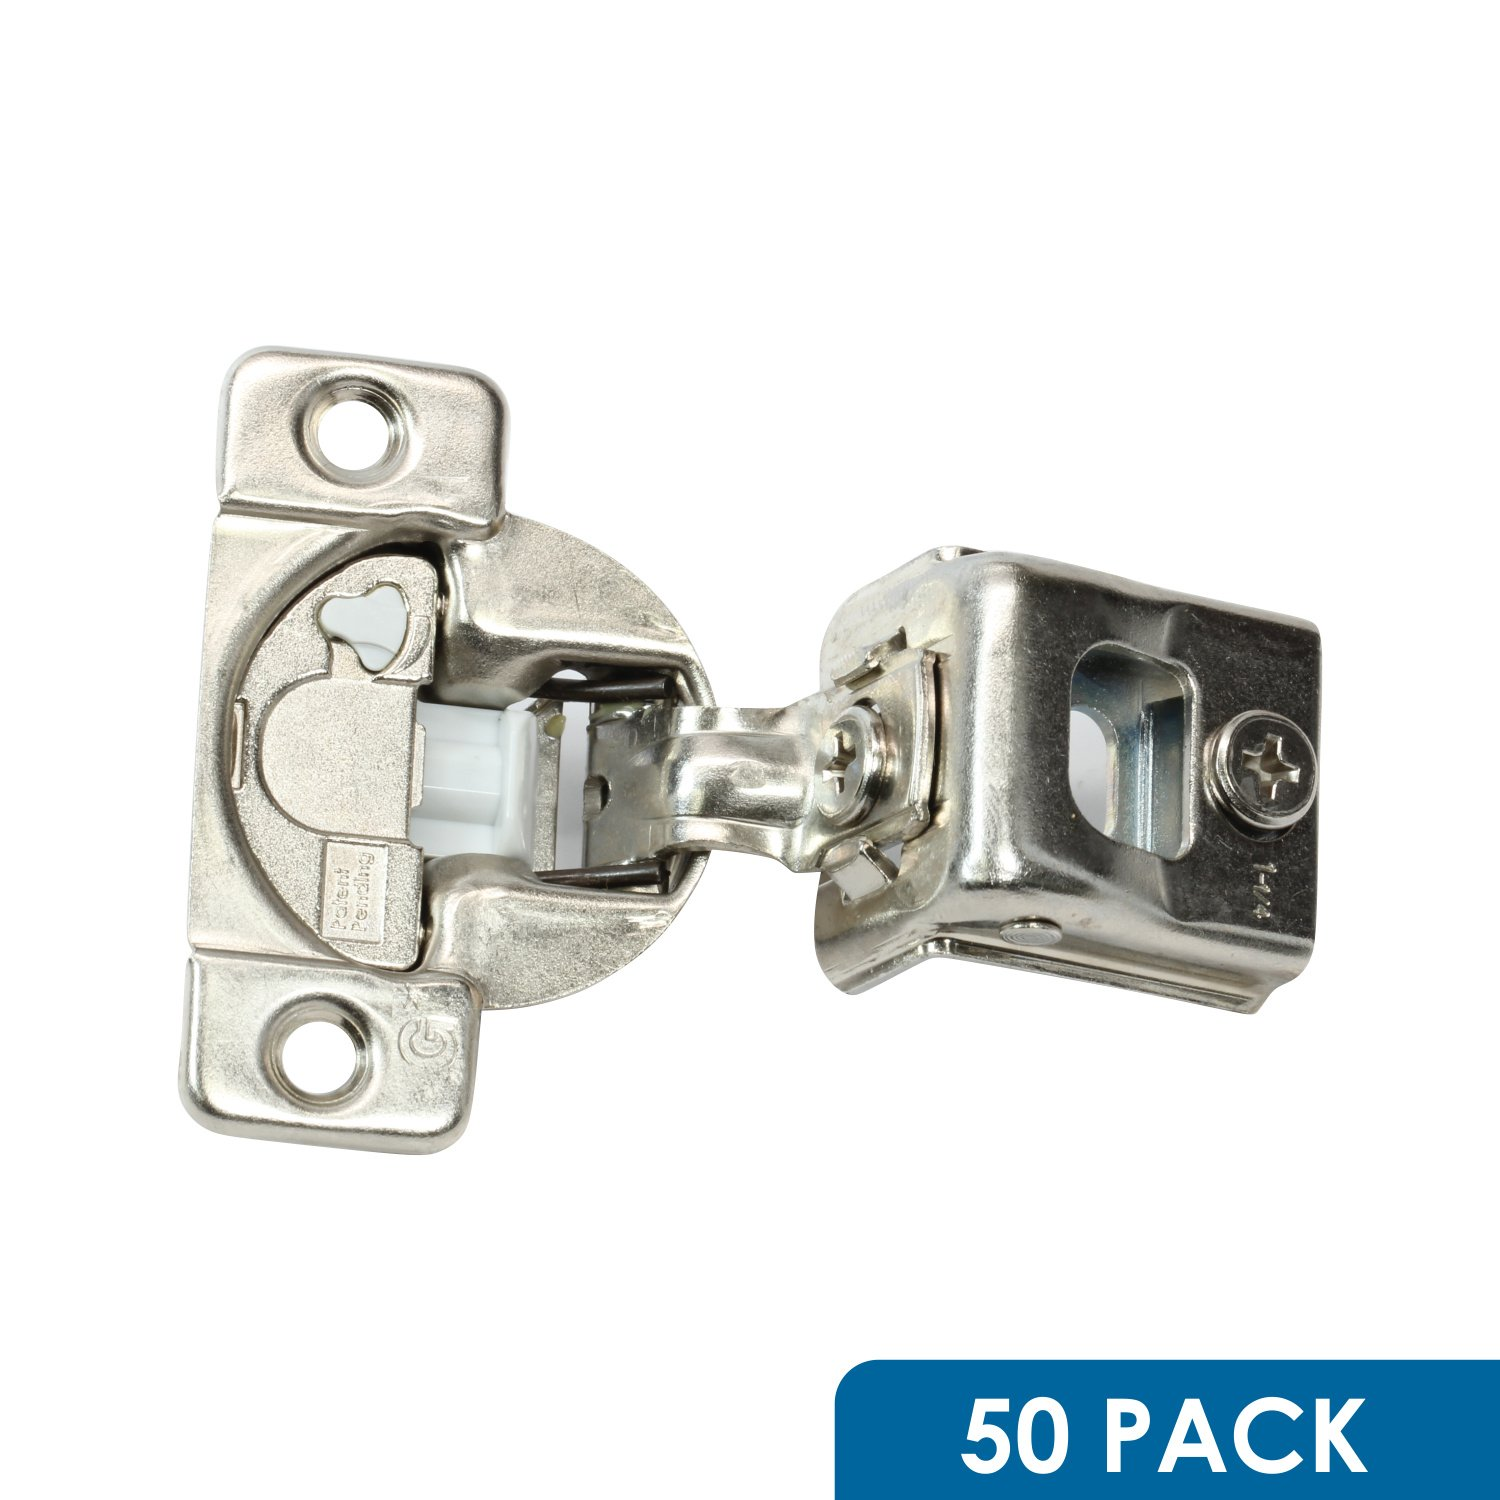 50 Pack Rok Hardware Grass TEC 864 108 Degree 1-1/4'' Overlay 3 Level Soft Close Screw On Compact Cabinet Hinge 04547A-15 3-Way Adjustment 45mm Boring Pattern